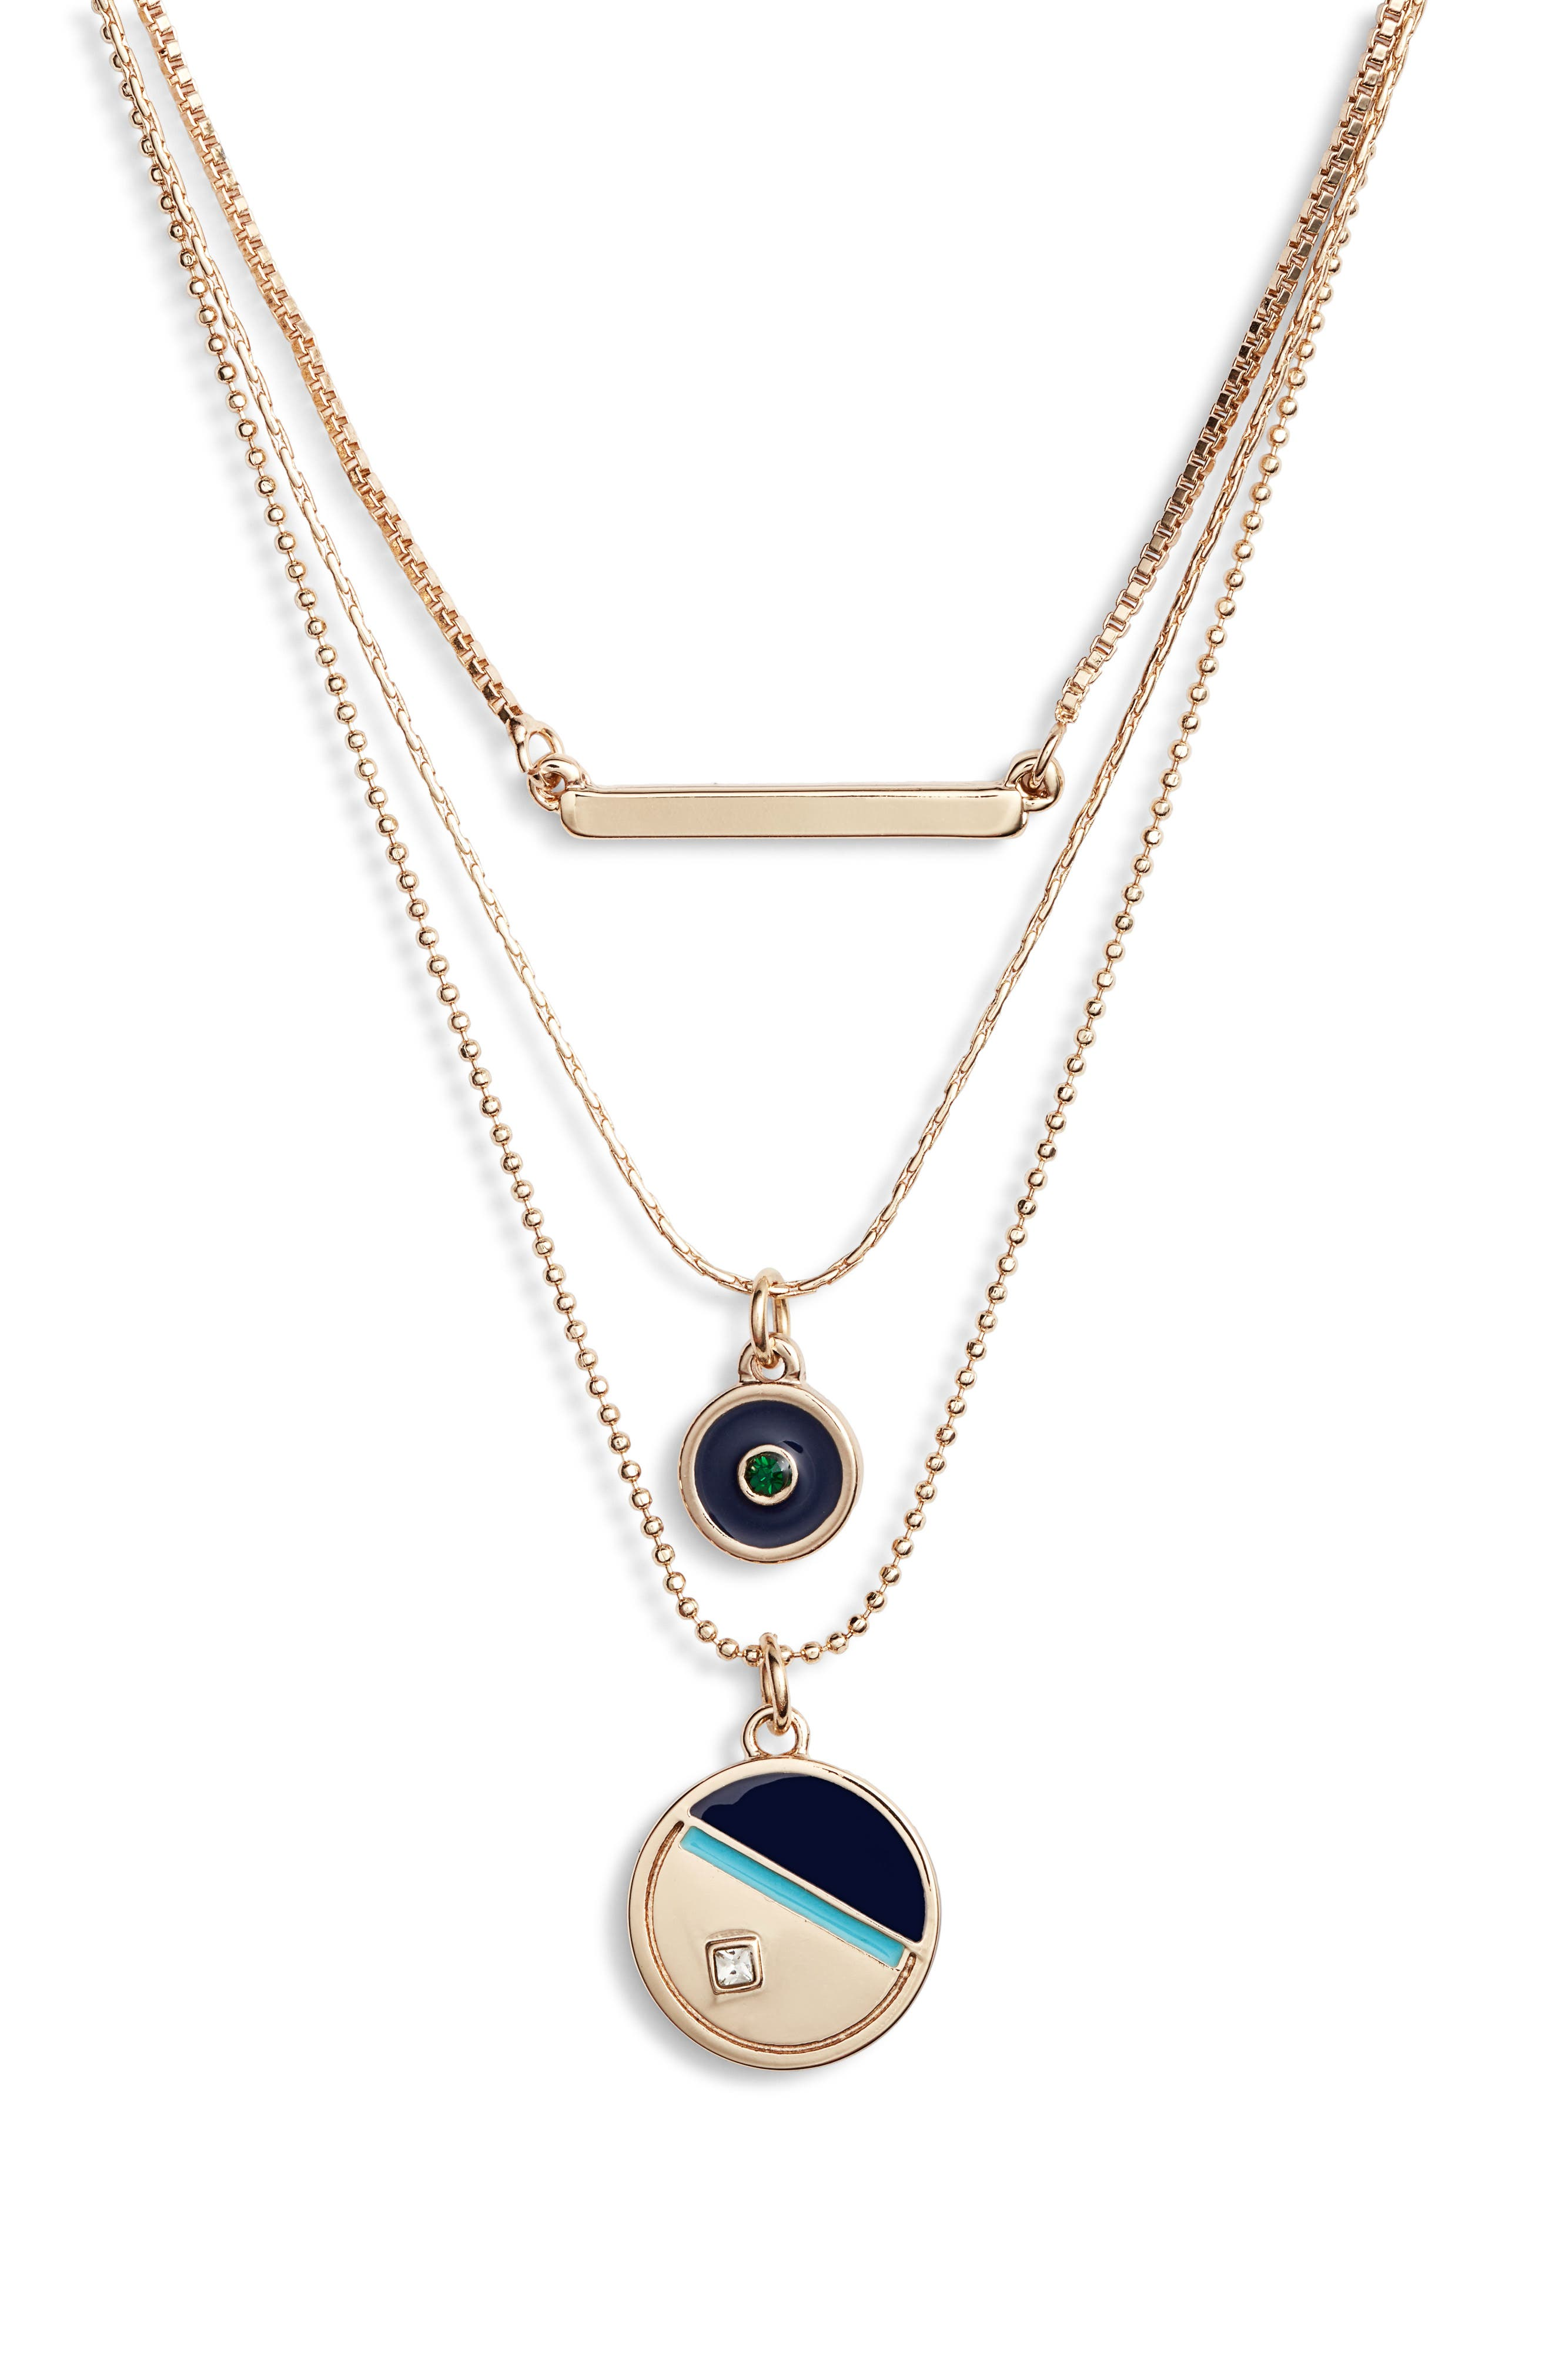 3-Tier Disc Necklace,                             Main thumbnail 1, color,                             TURQUOISE- NAVY- GOLD